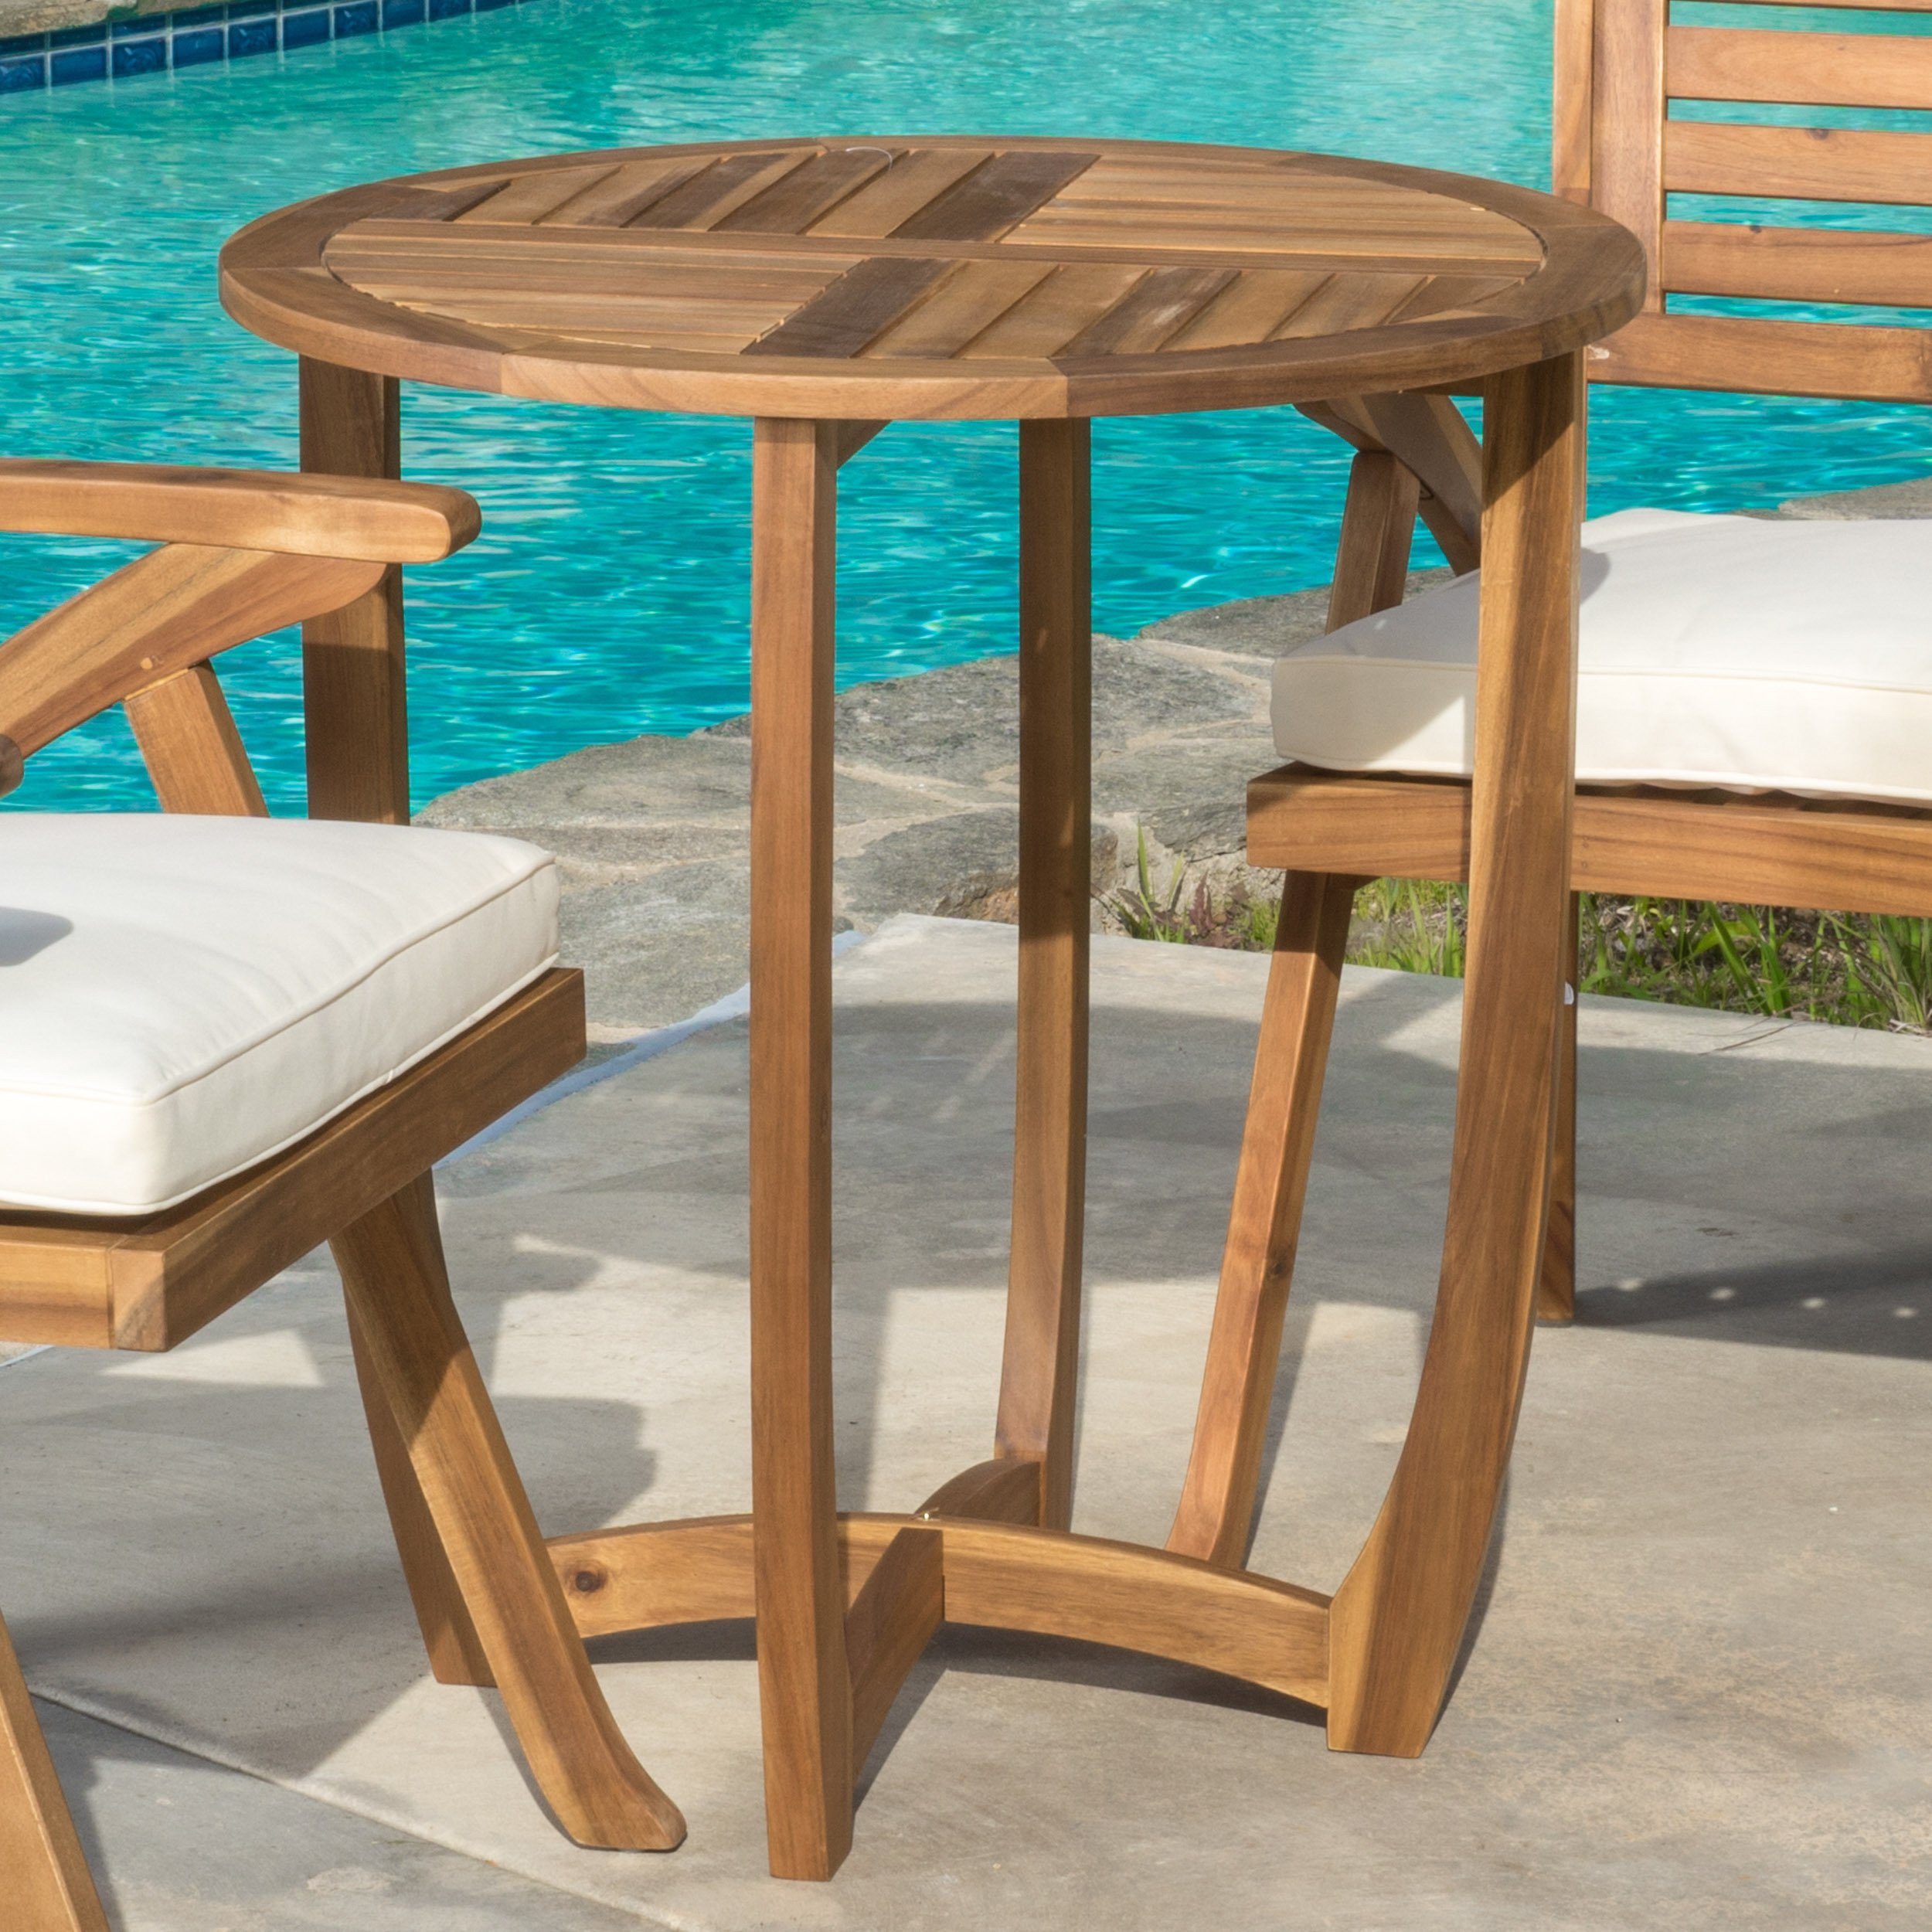 coronado outdoor round acacia wood accent table christopher knight home free shipping today tablecloth for trestle bench legs crystal lamp wooden threshold plates mid century